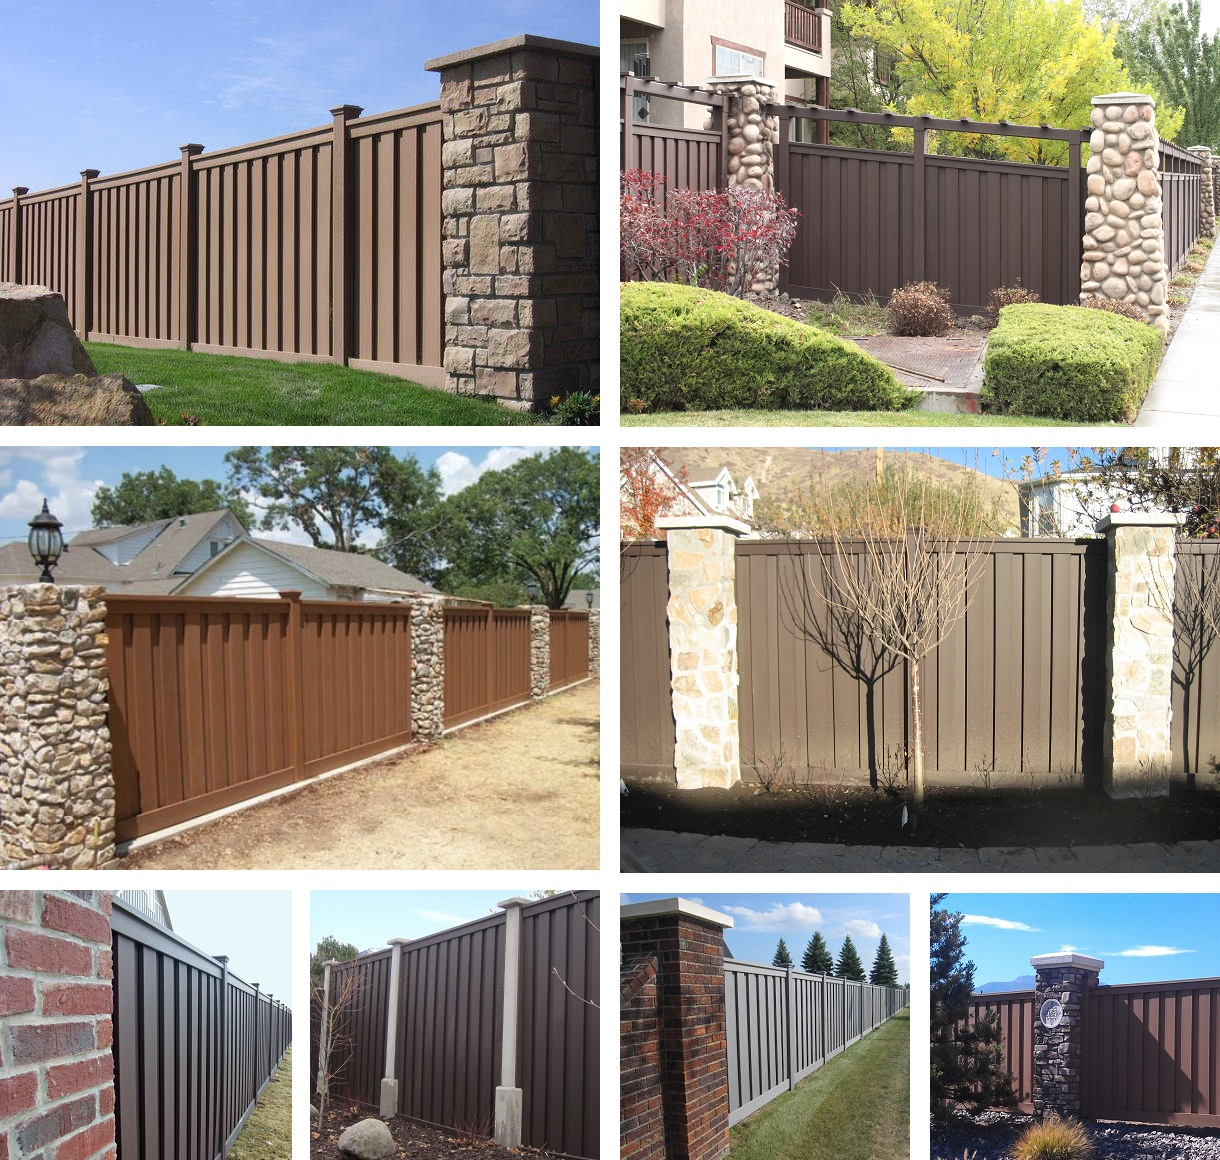 Trex fencing combined with masonry, brick, and stone